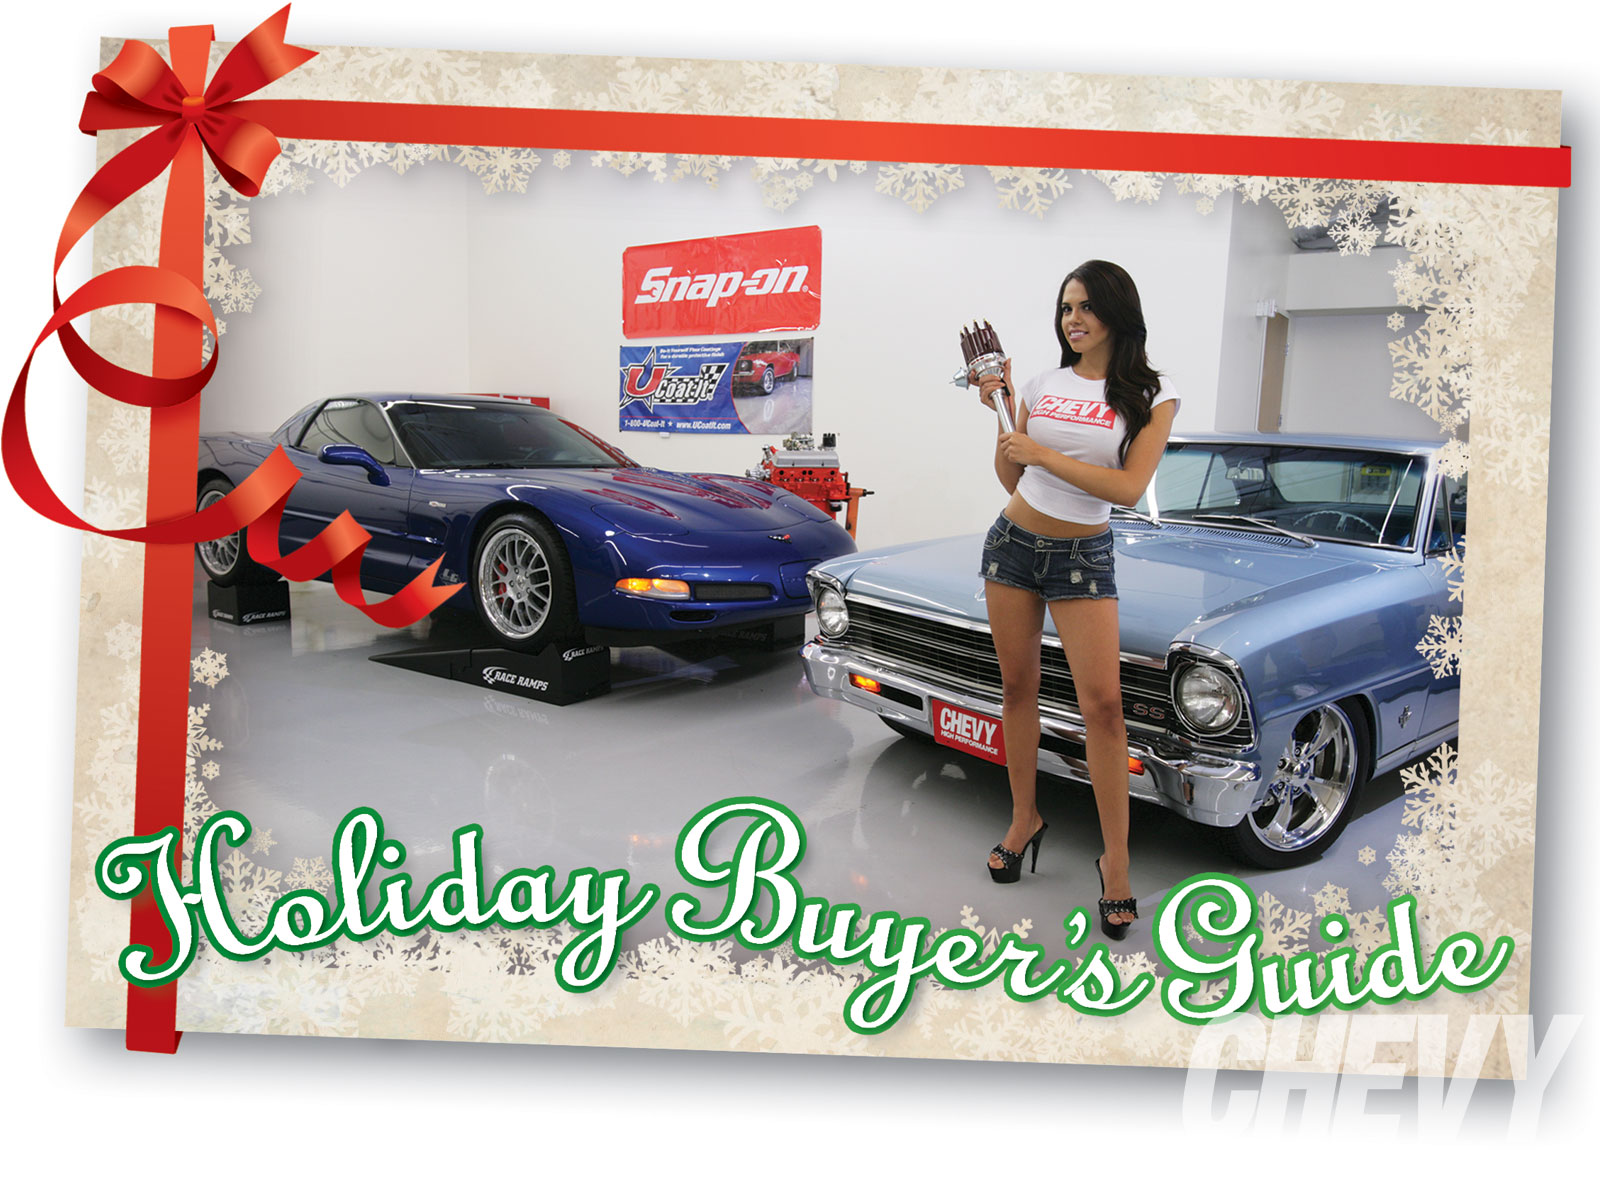 2010 Chevy High Performance Holiday Buyer's Guide